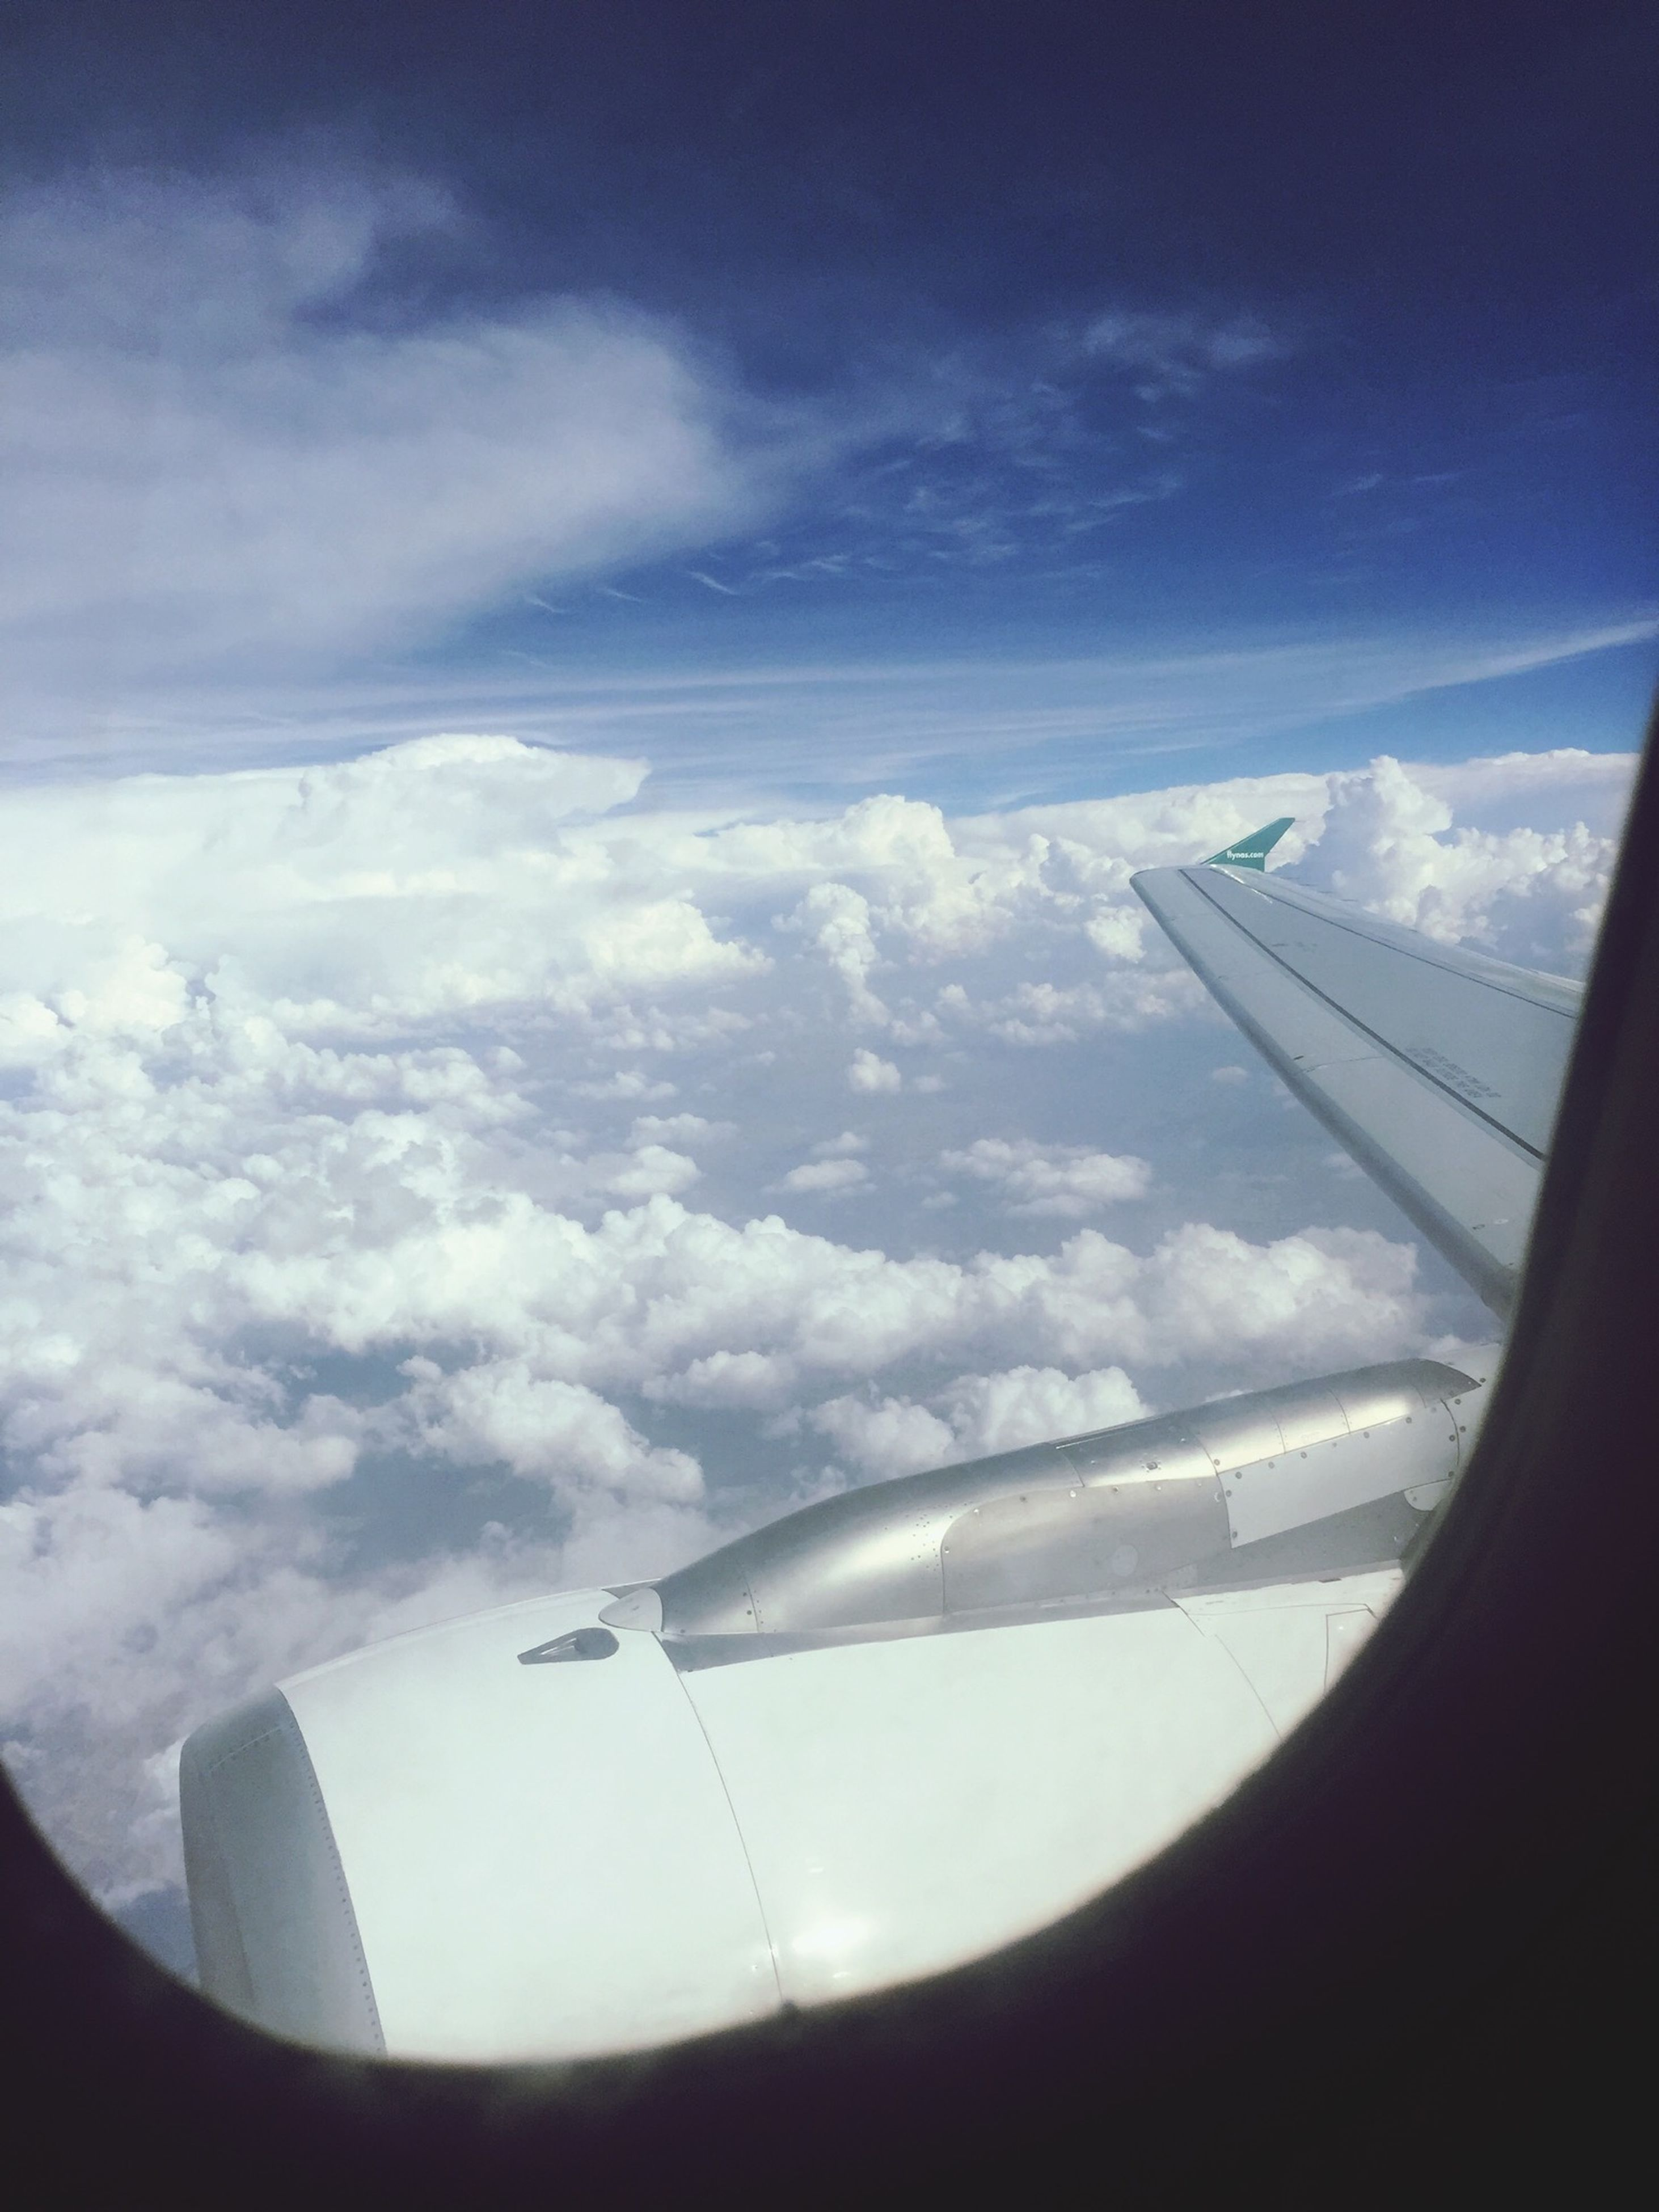 airplane, transportation, air vehicle, mode of transport, flying, aircraft wing, part of, mid-air, cropped, aerial view, on the move, travel, journey, sky, aeroplane, airplane wing, public transportation, aircraft, cloud - sky, vehicle part